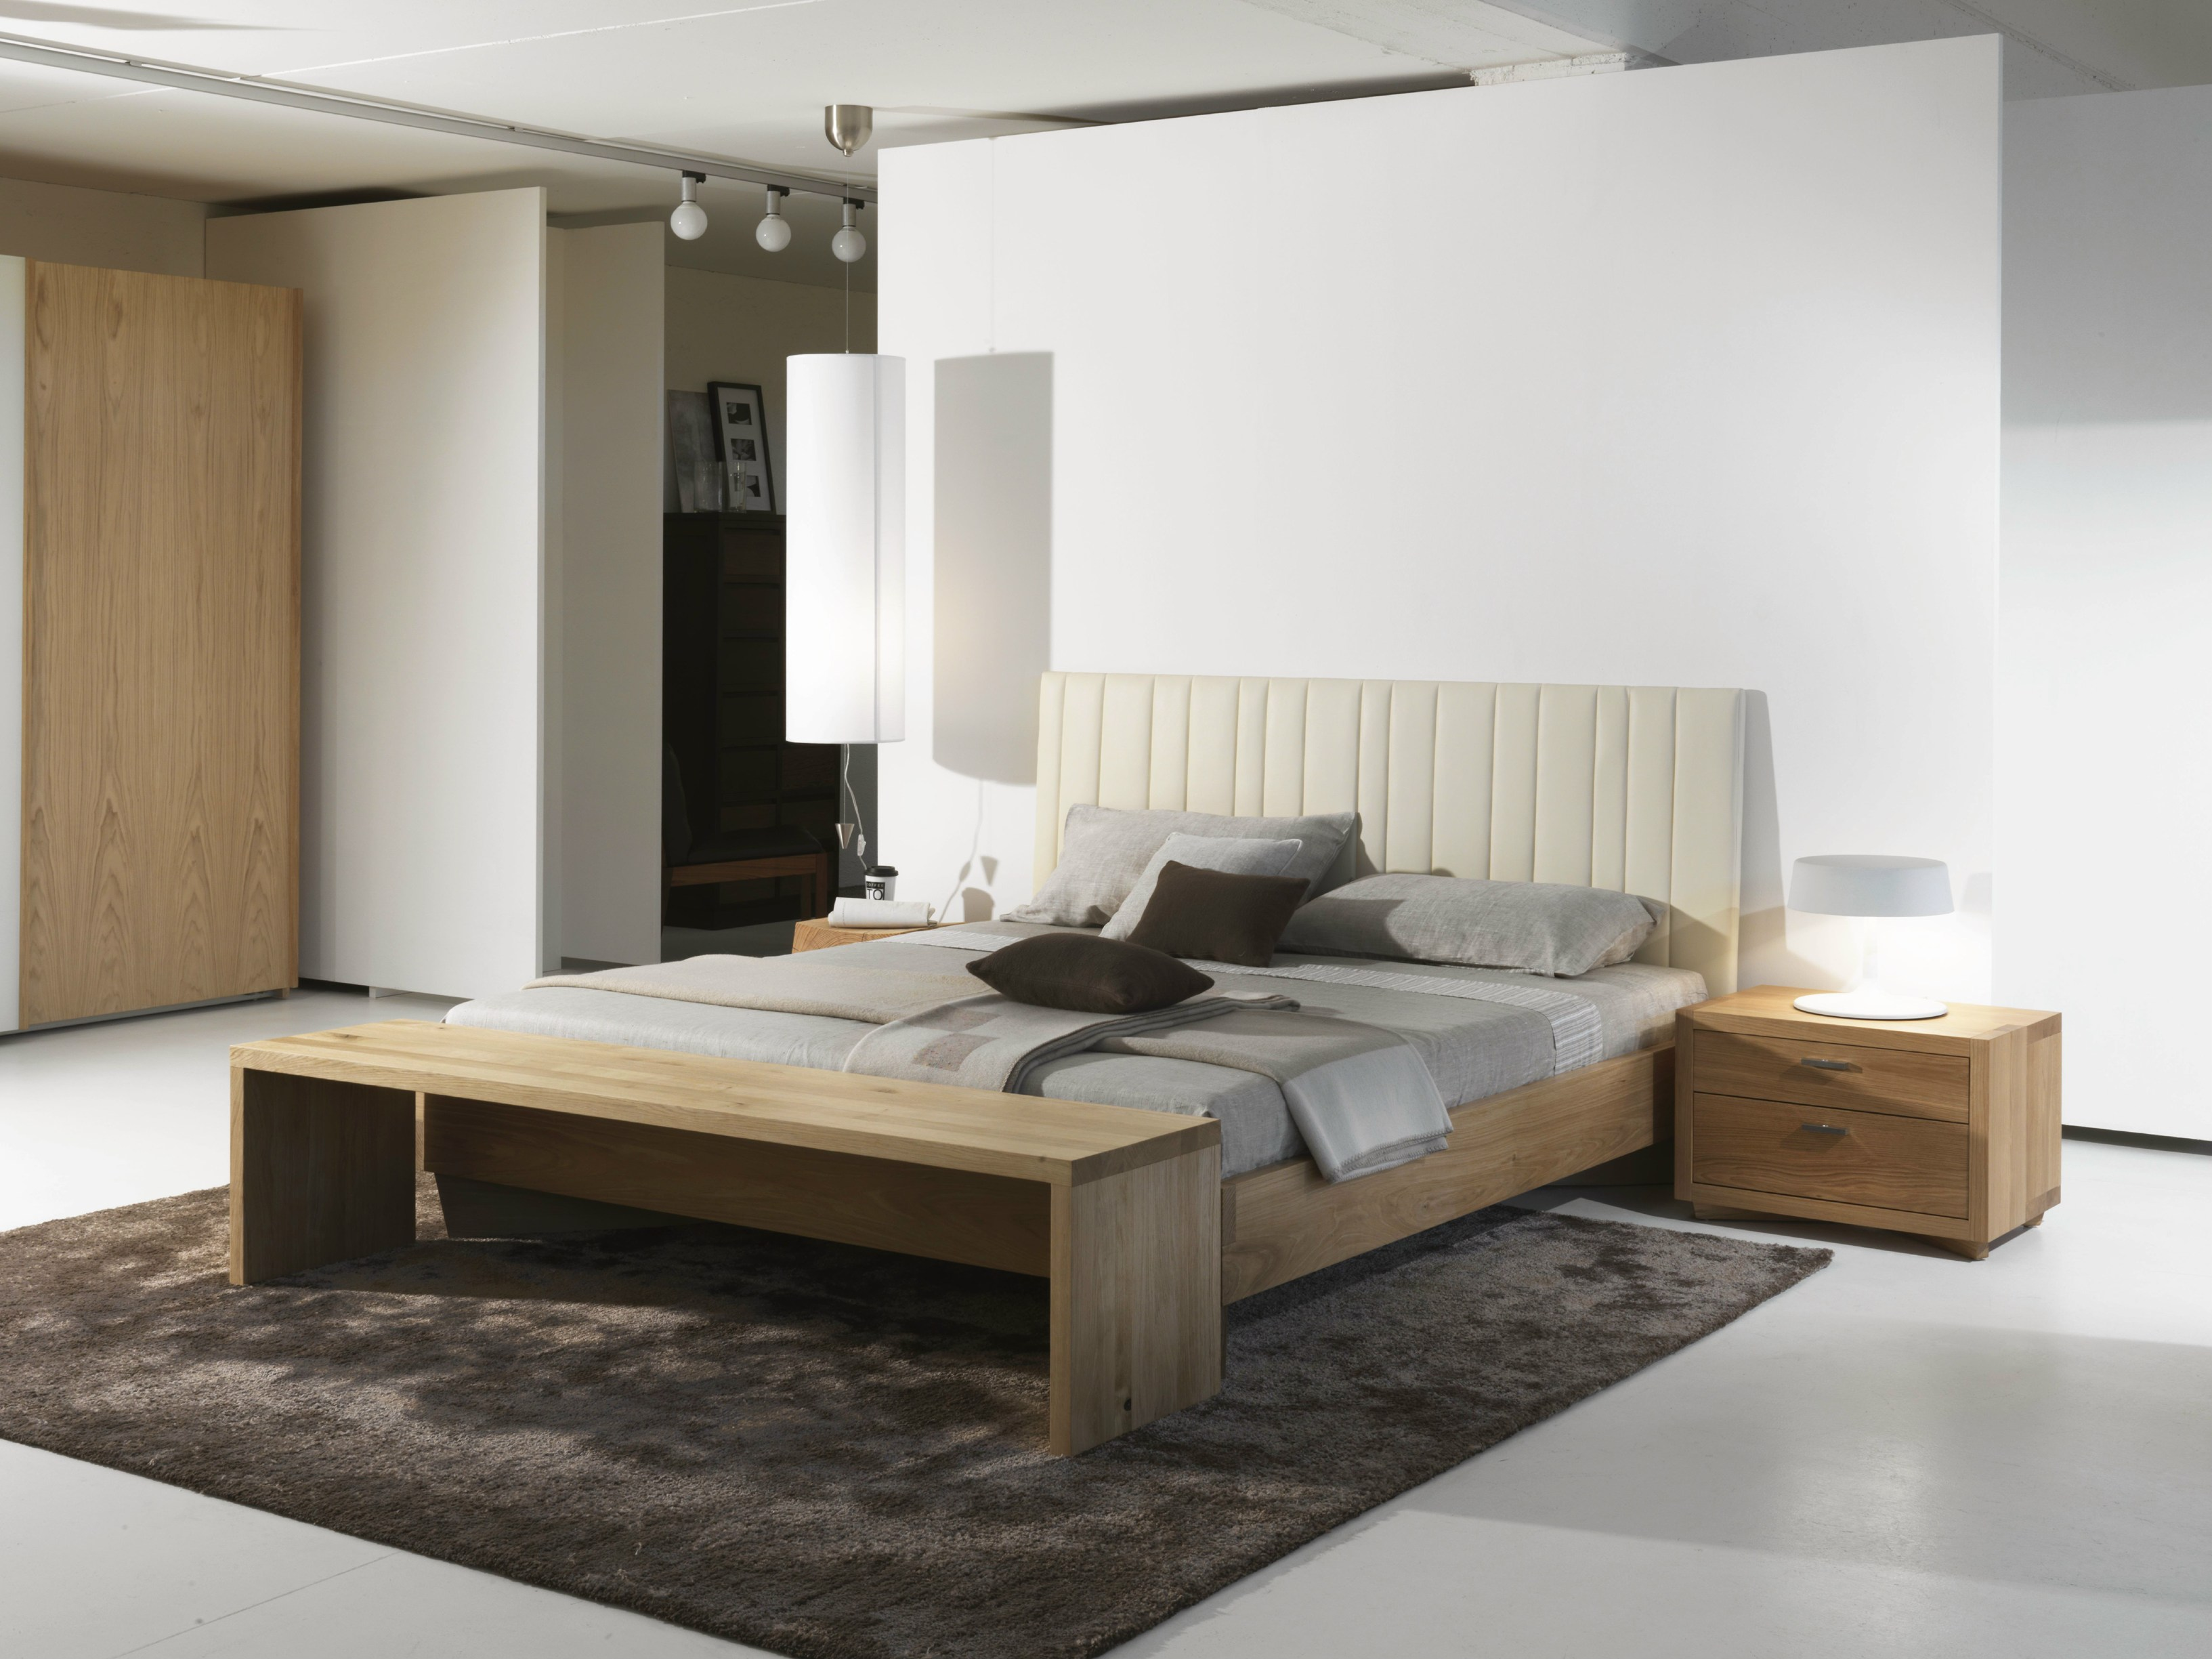 letto matrimoniale moderno vezio. Black Bedroom Furniture Sets. Home Design Ideas